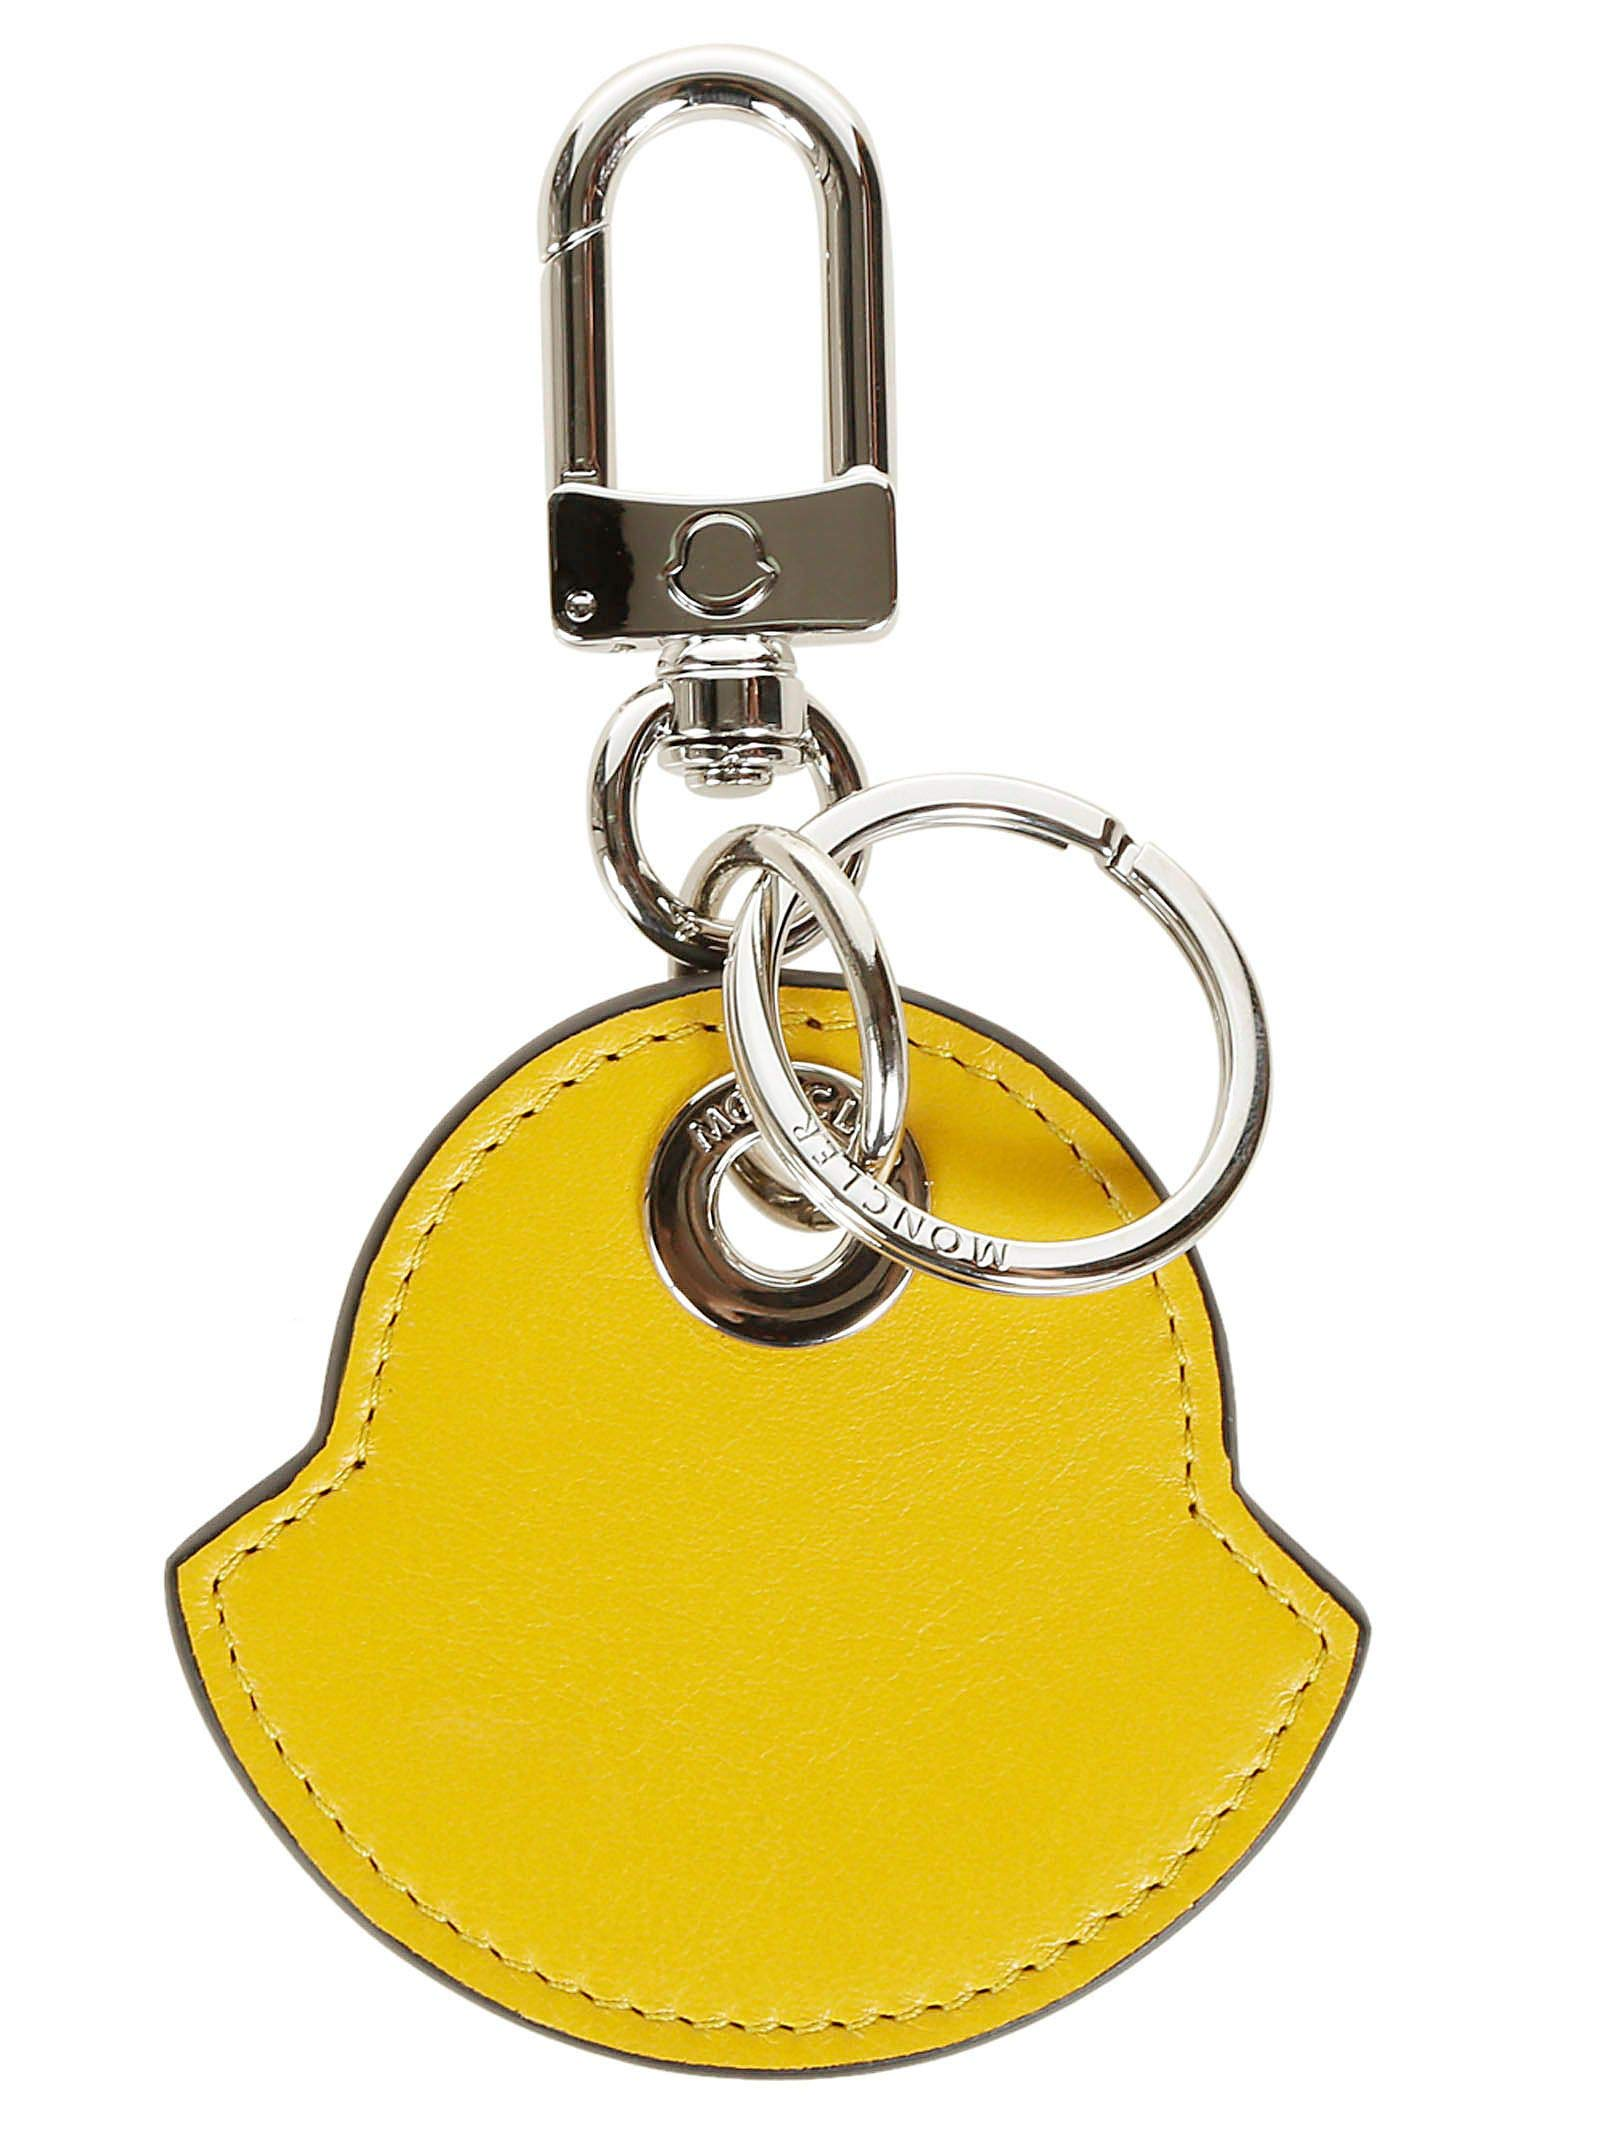 Moncler Genius Men's 0088507504135 Yellow Leather Key Chain